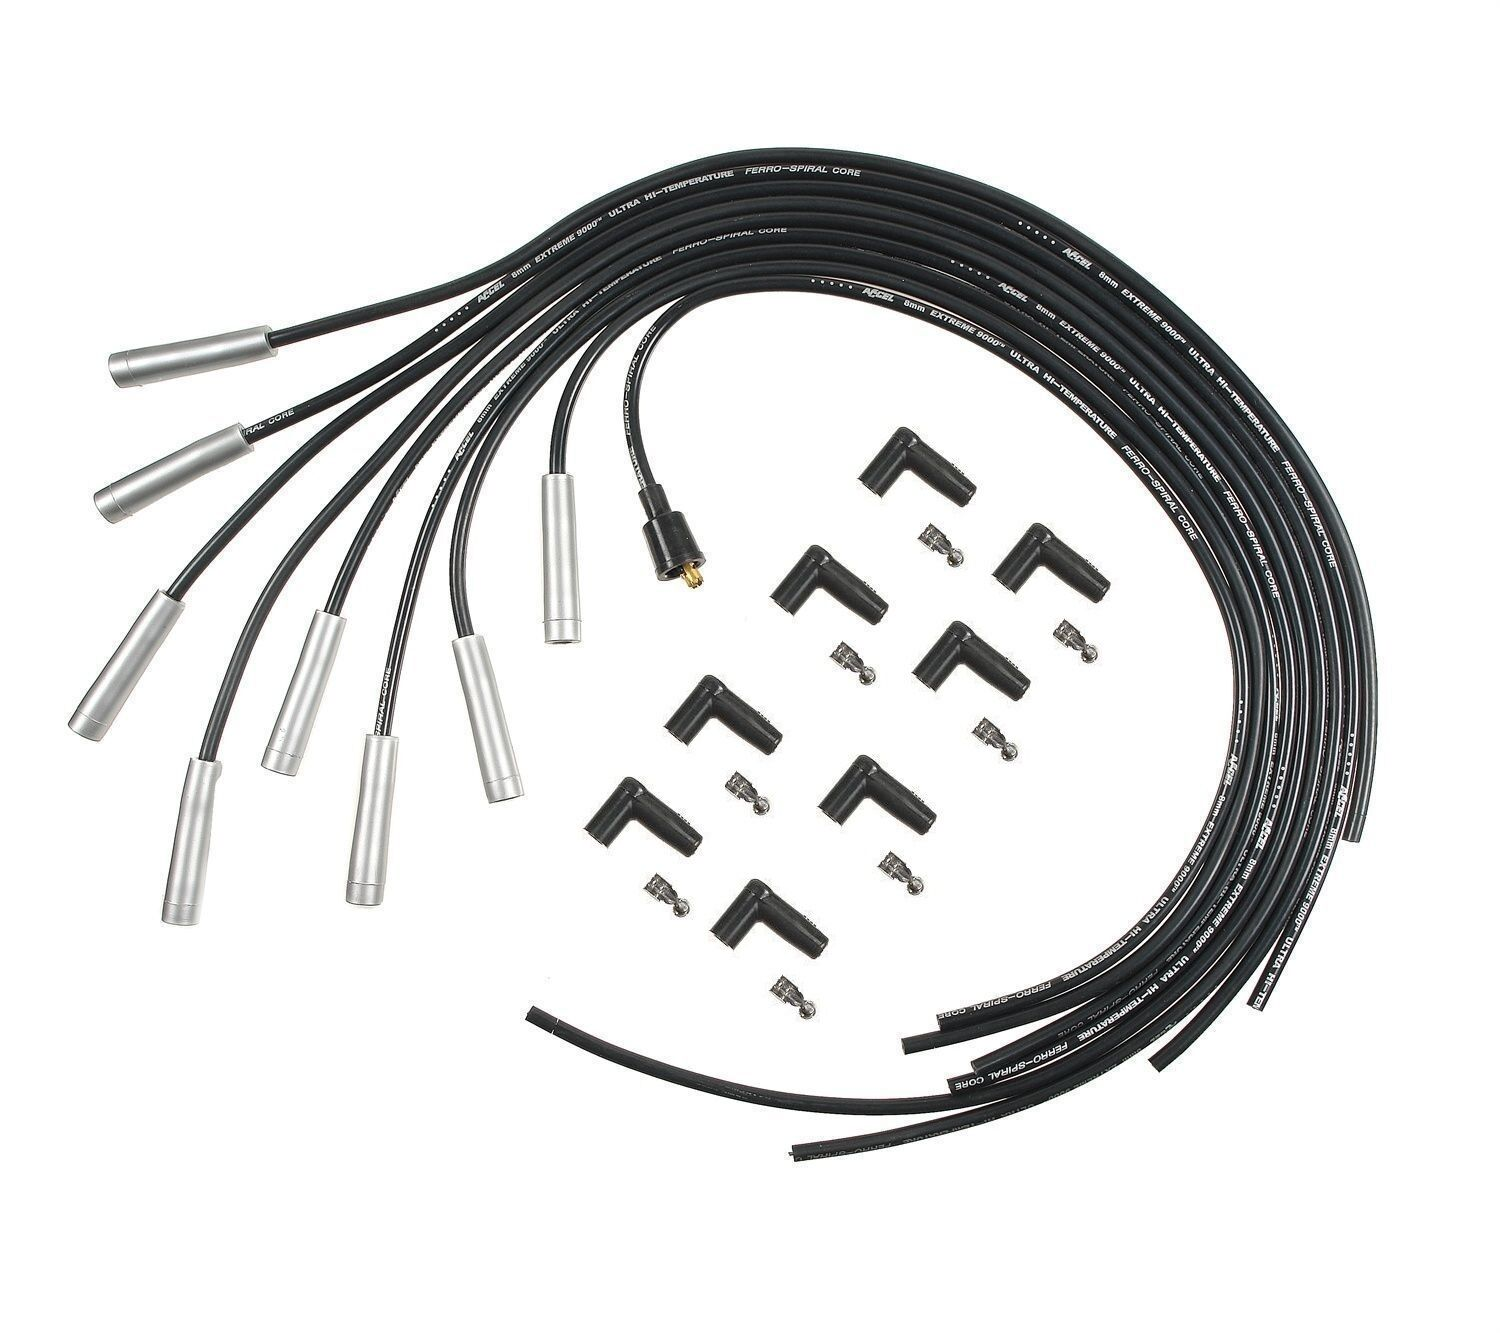 accel 9000 extreme heat 8mm spark plug wires universal big